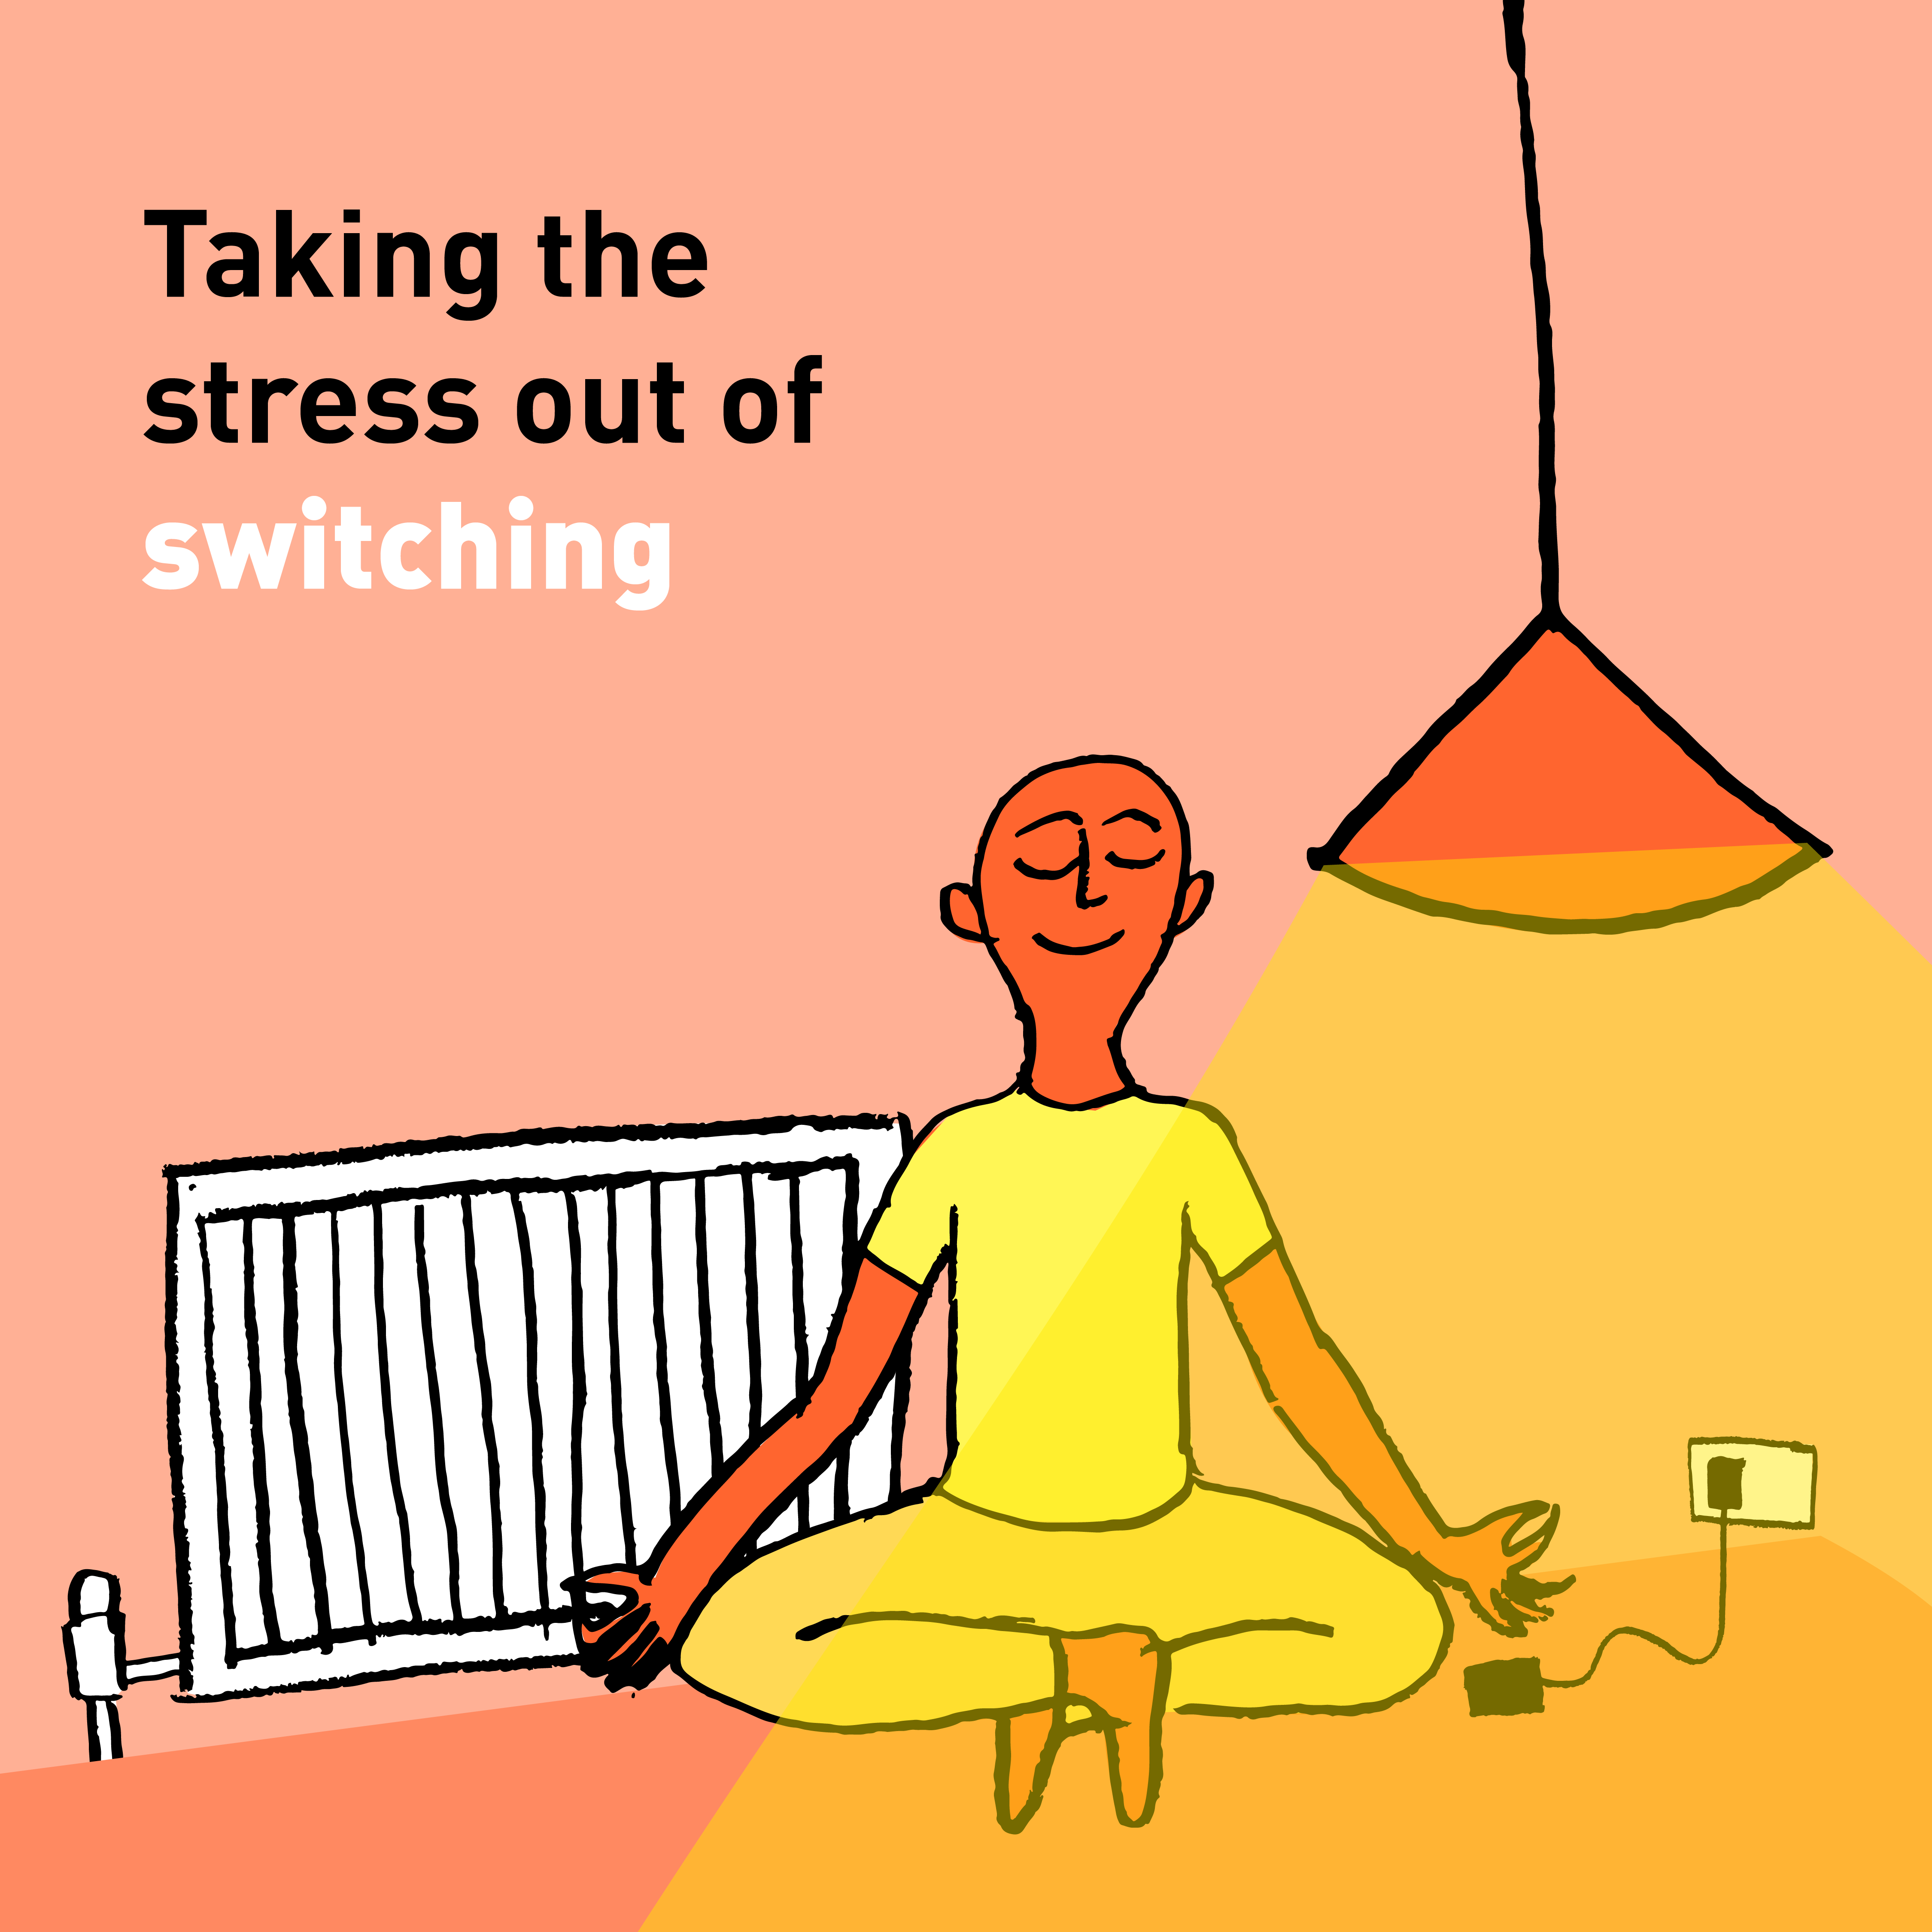 Take the stress out of switching - Twitter